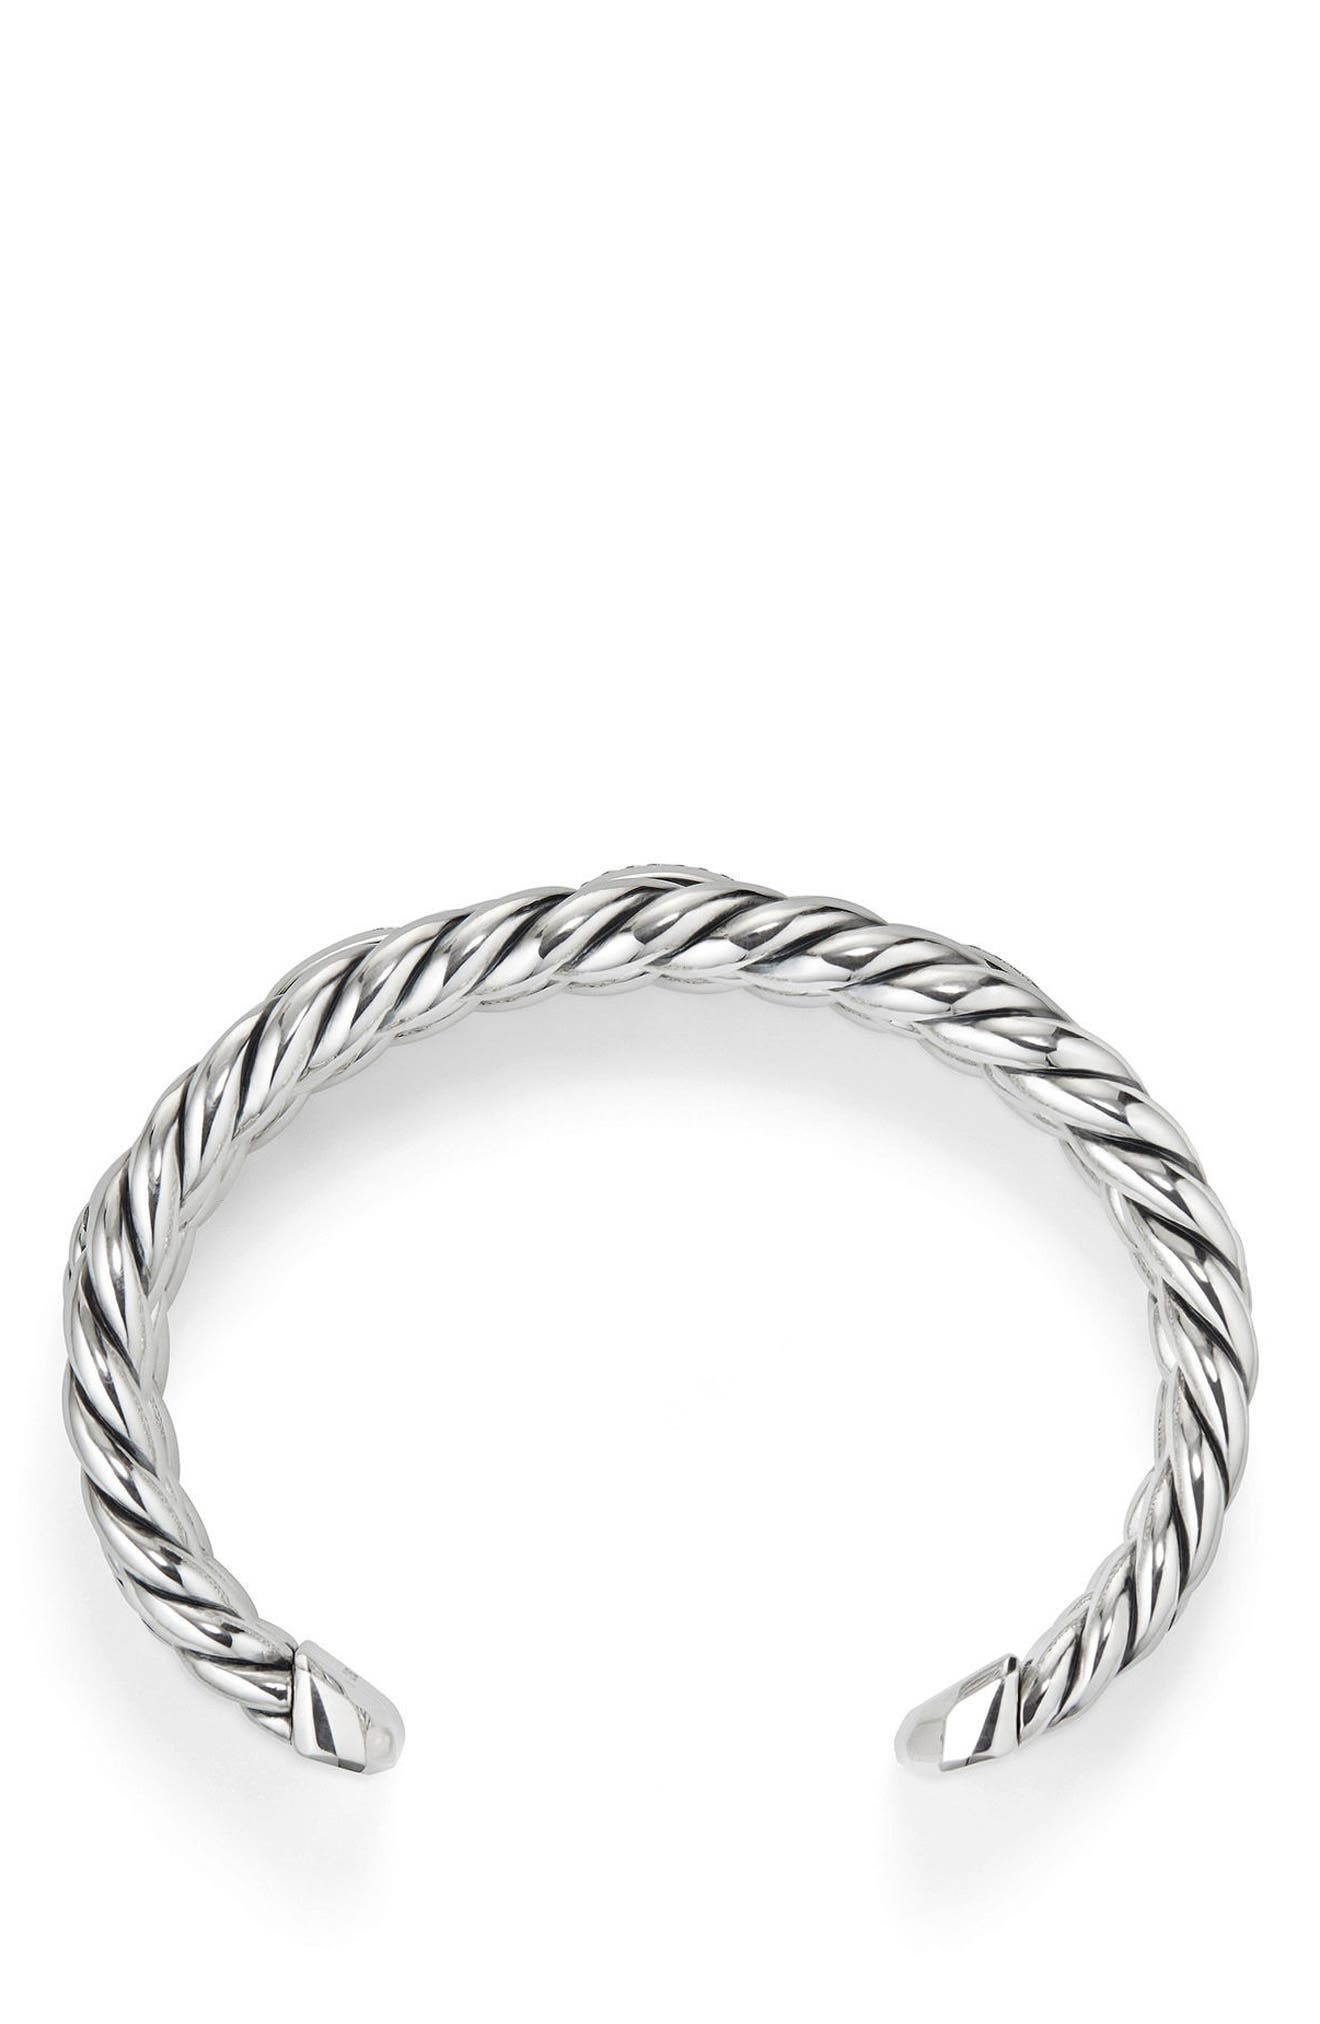 Wellesley Link Chain Three-Row Cuff with Diamonds,                             Alternate thumbnail 2, color,                             Silver